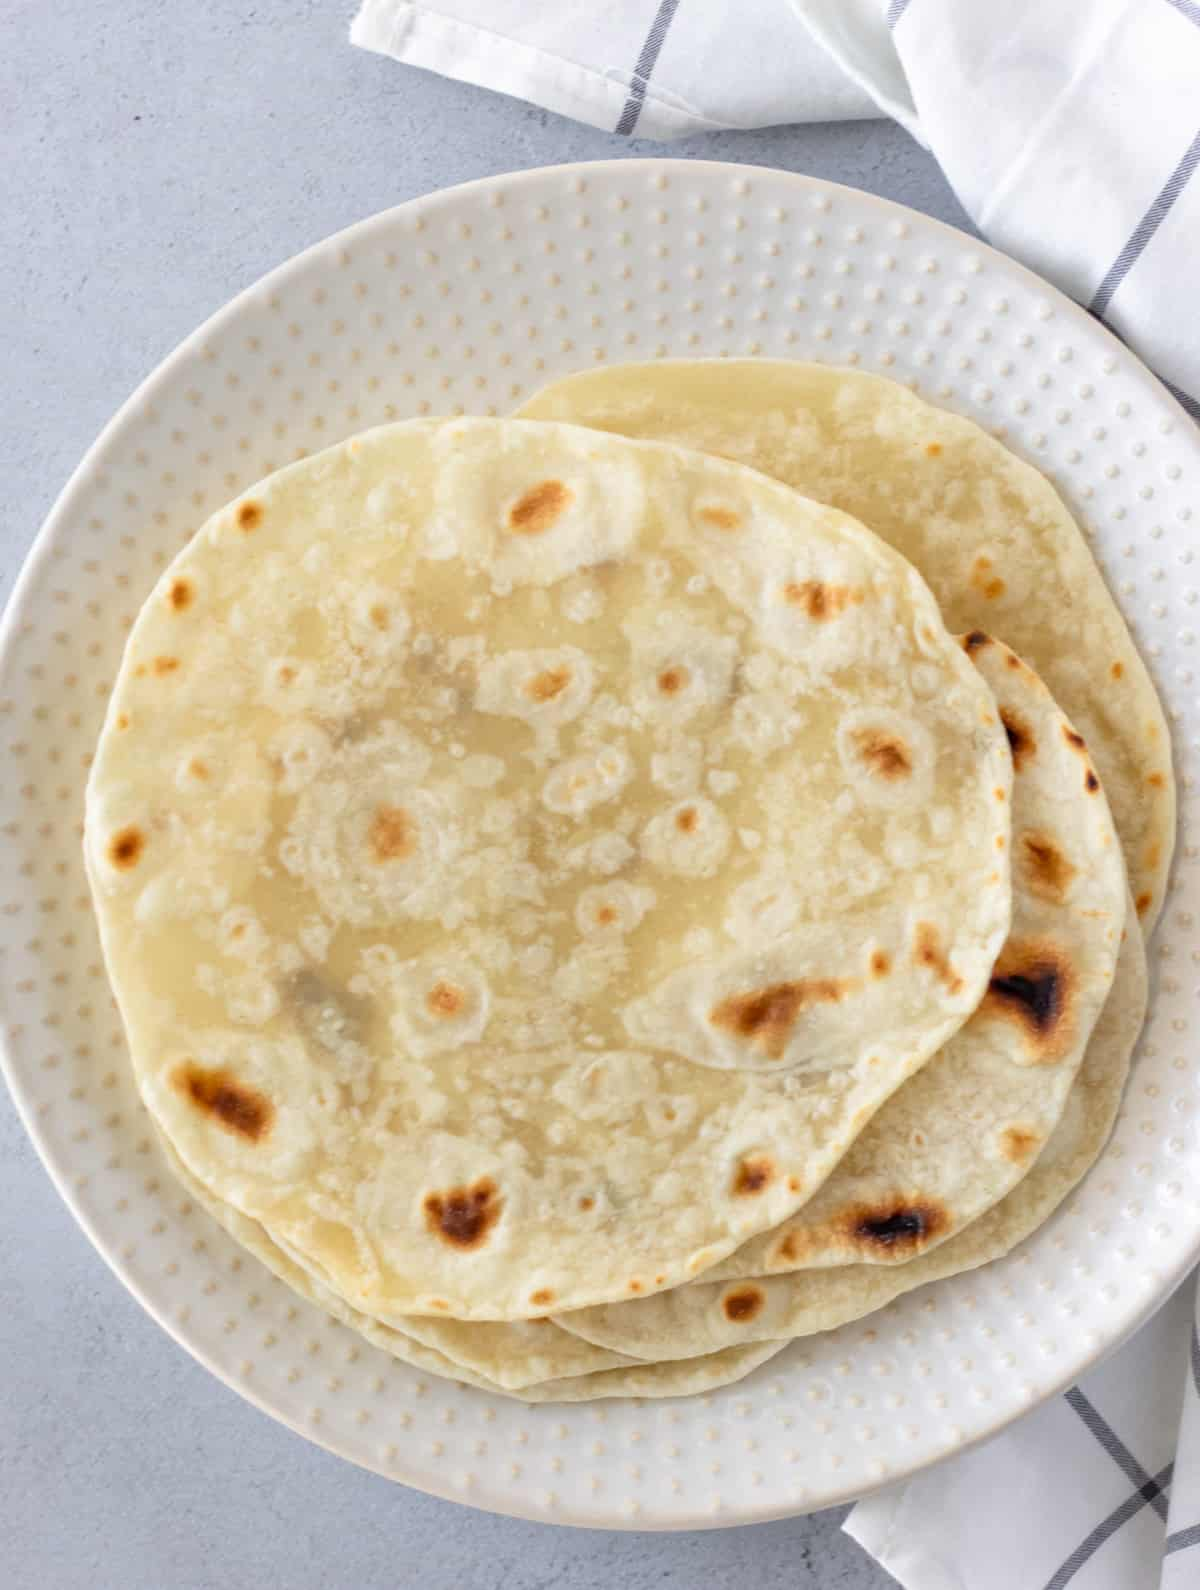 Overhead view of tortillas on a plate.